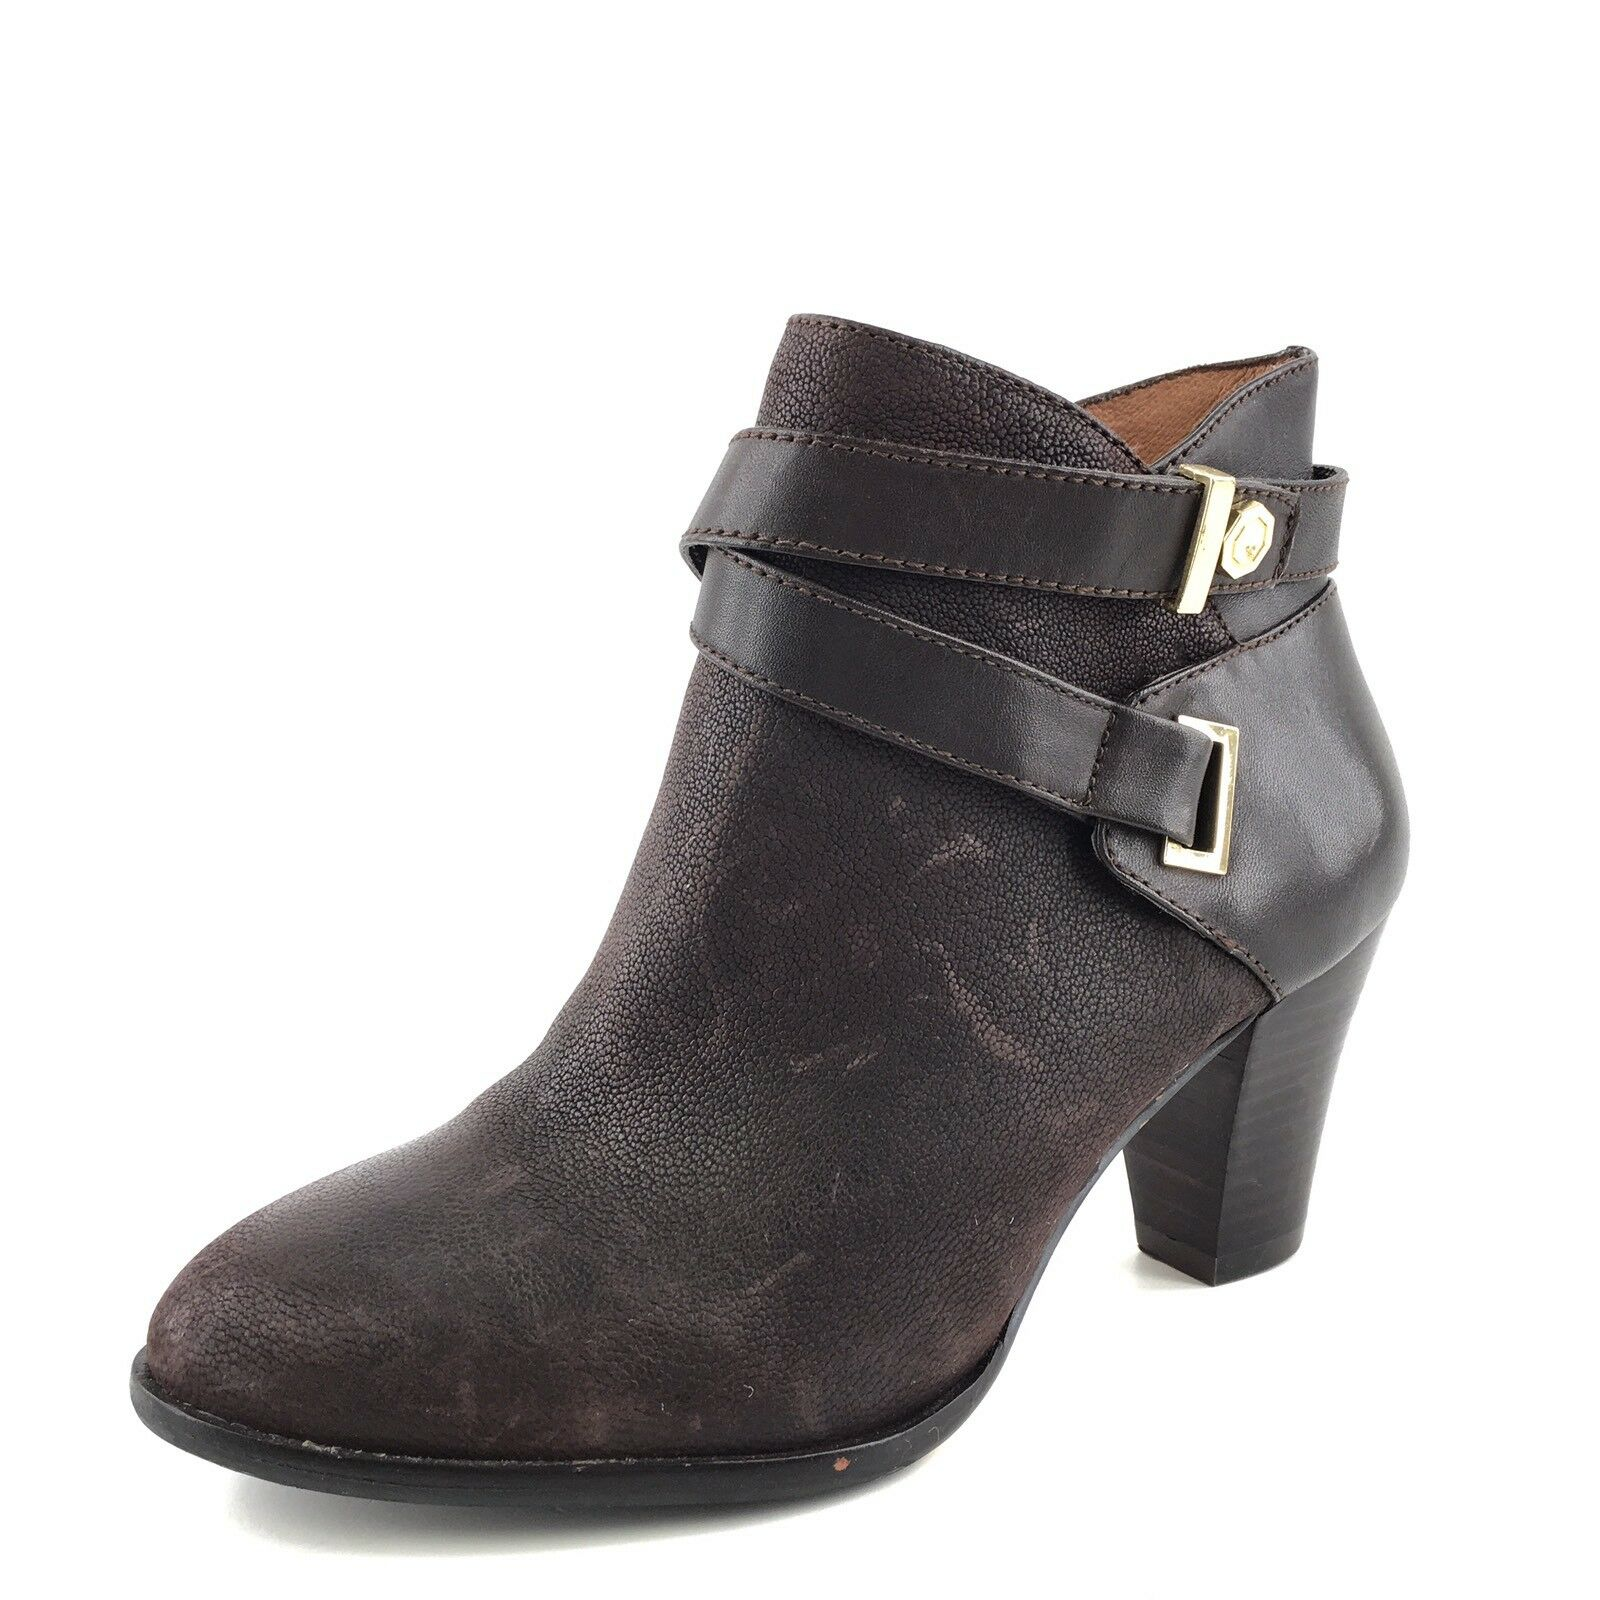 Louise et Cie Ranier Dark Brown Leather Fashion Ankle Boots Womens Size 6.5 M*